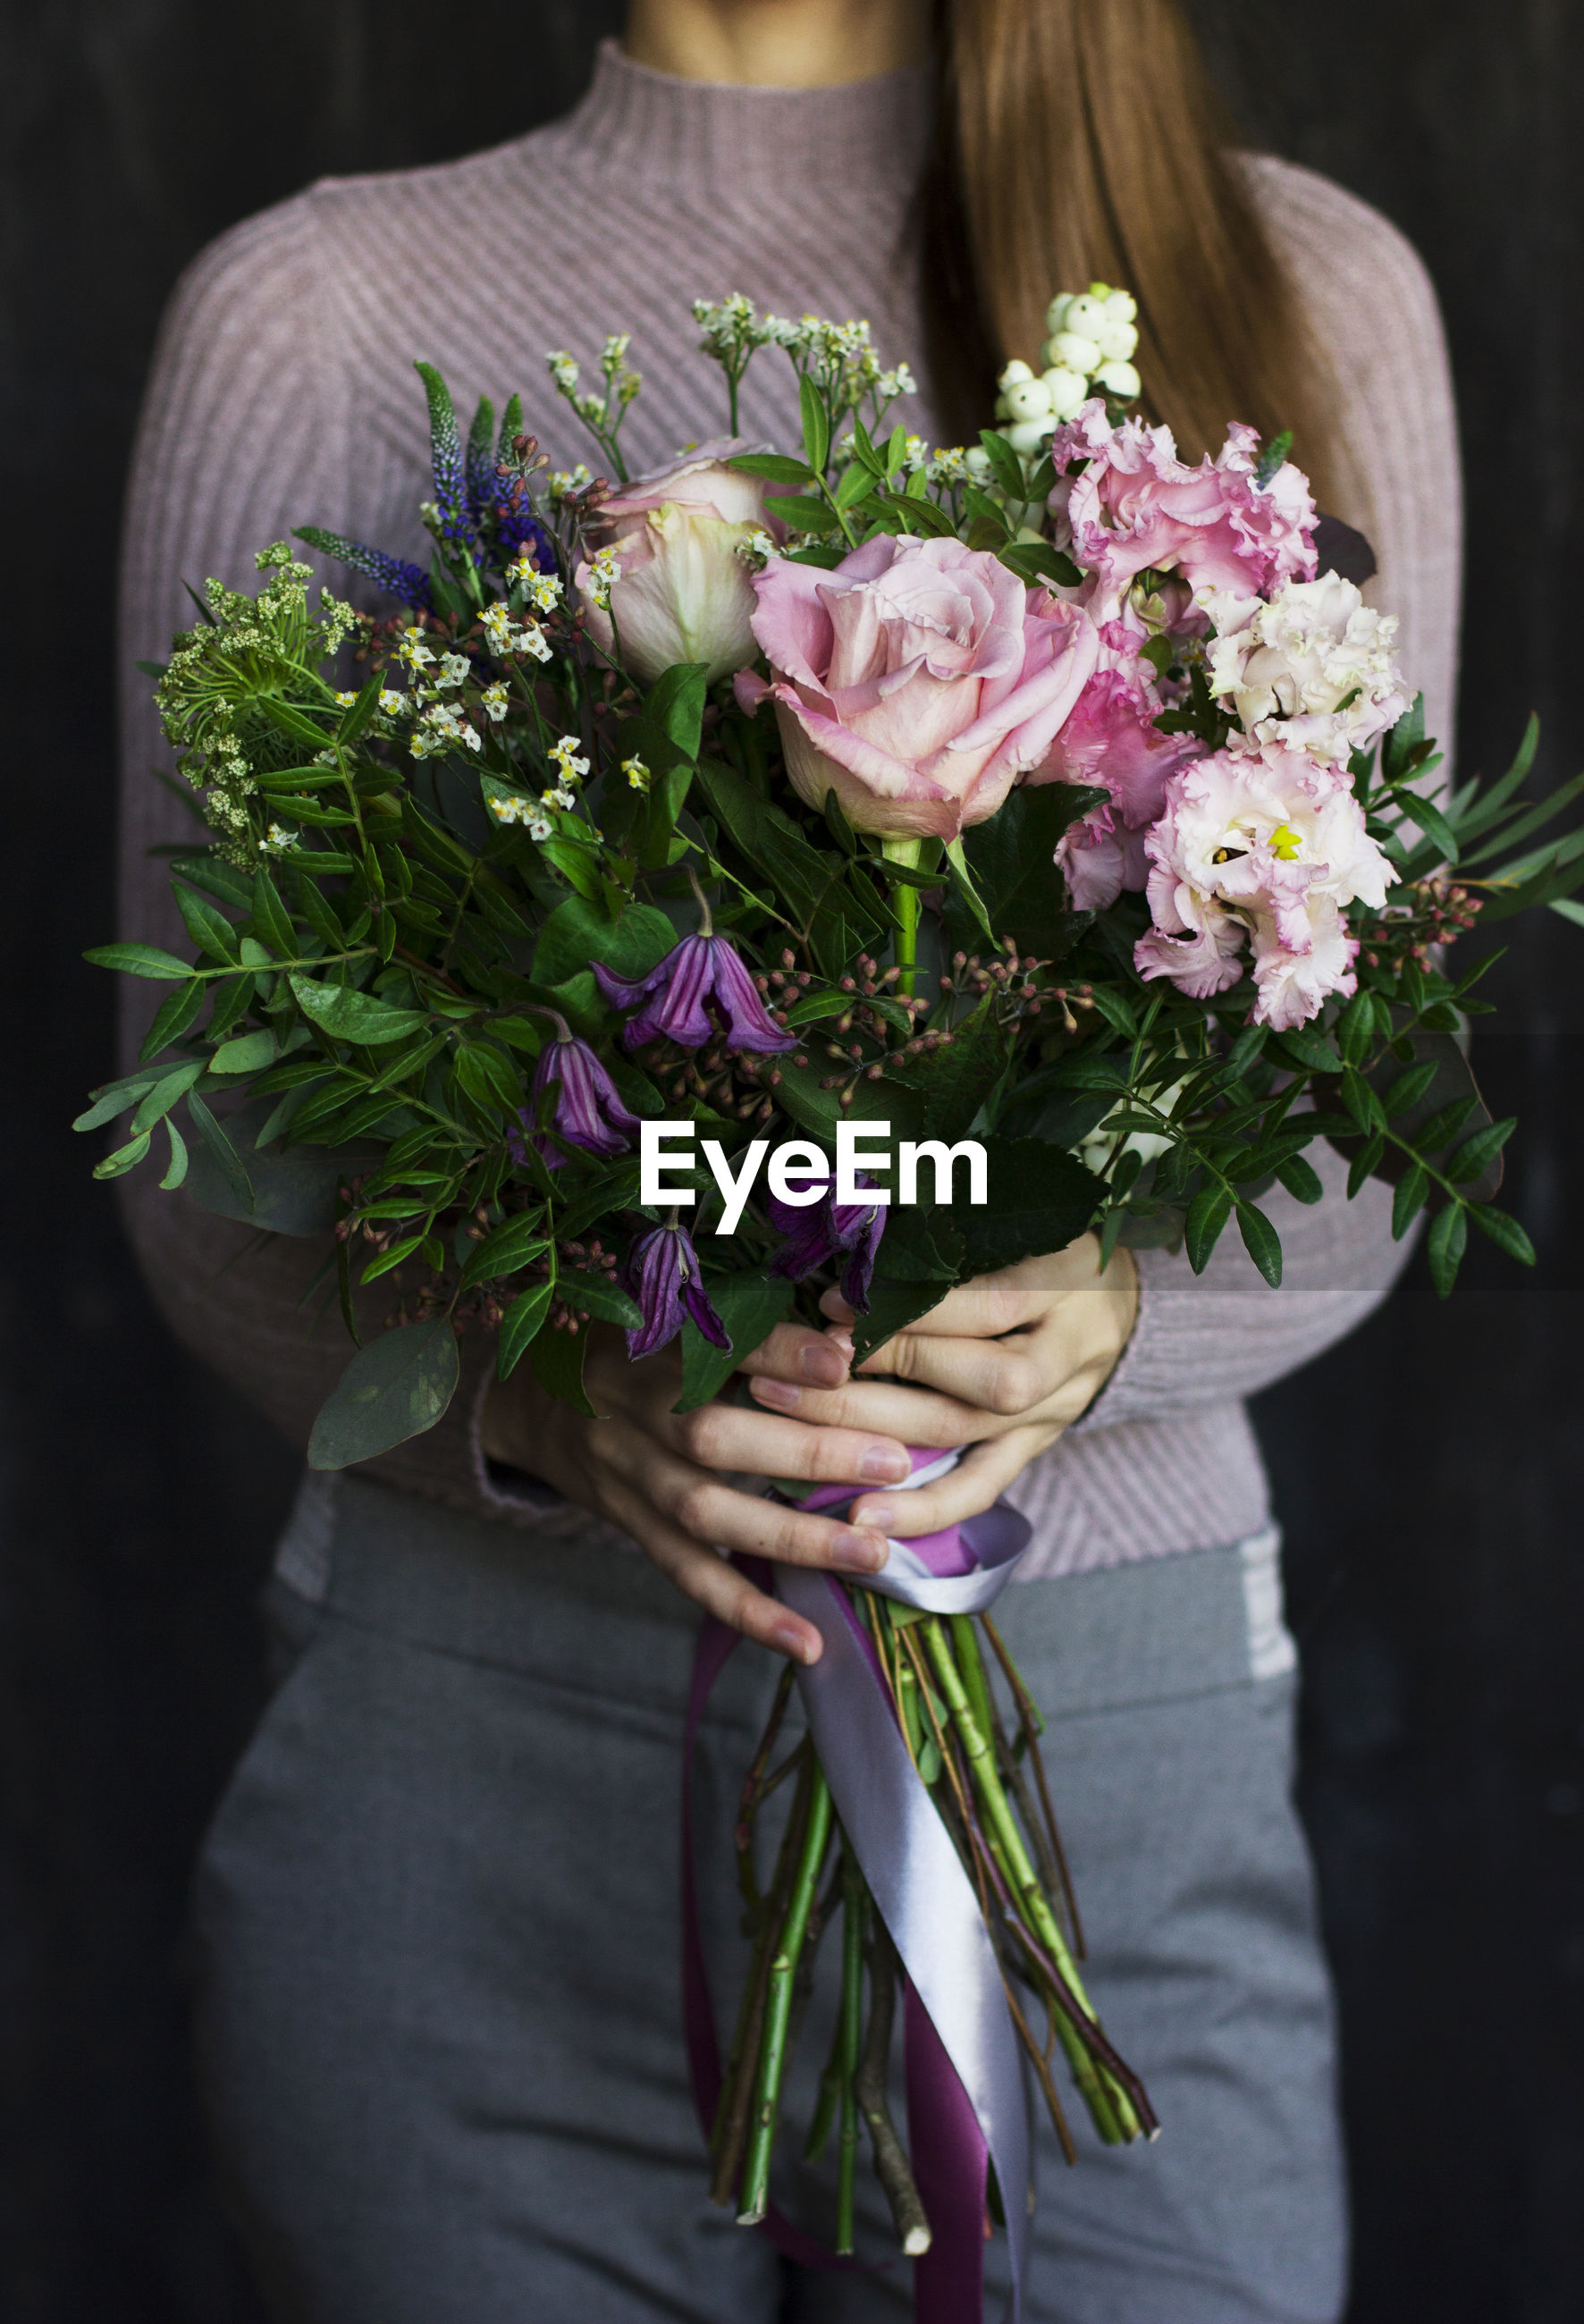 Midsection of woman holding bouquet against black background